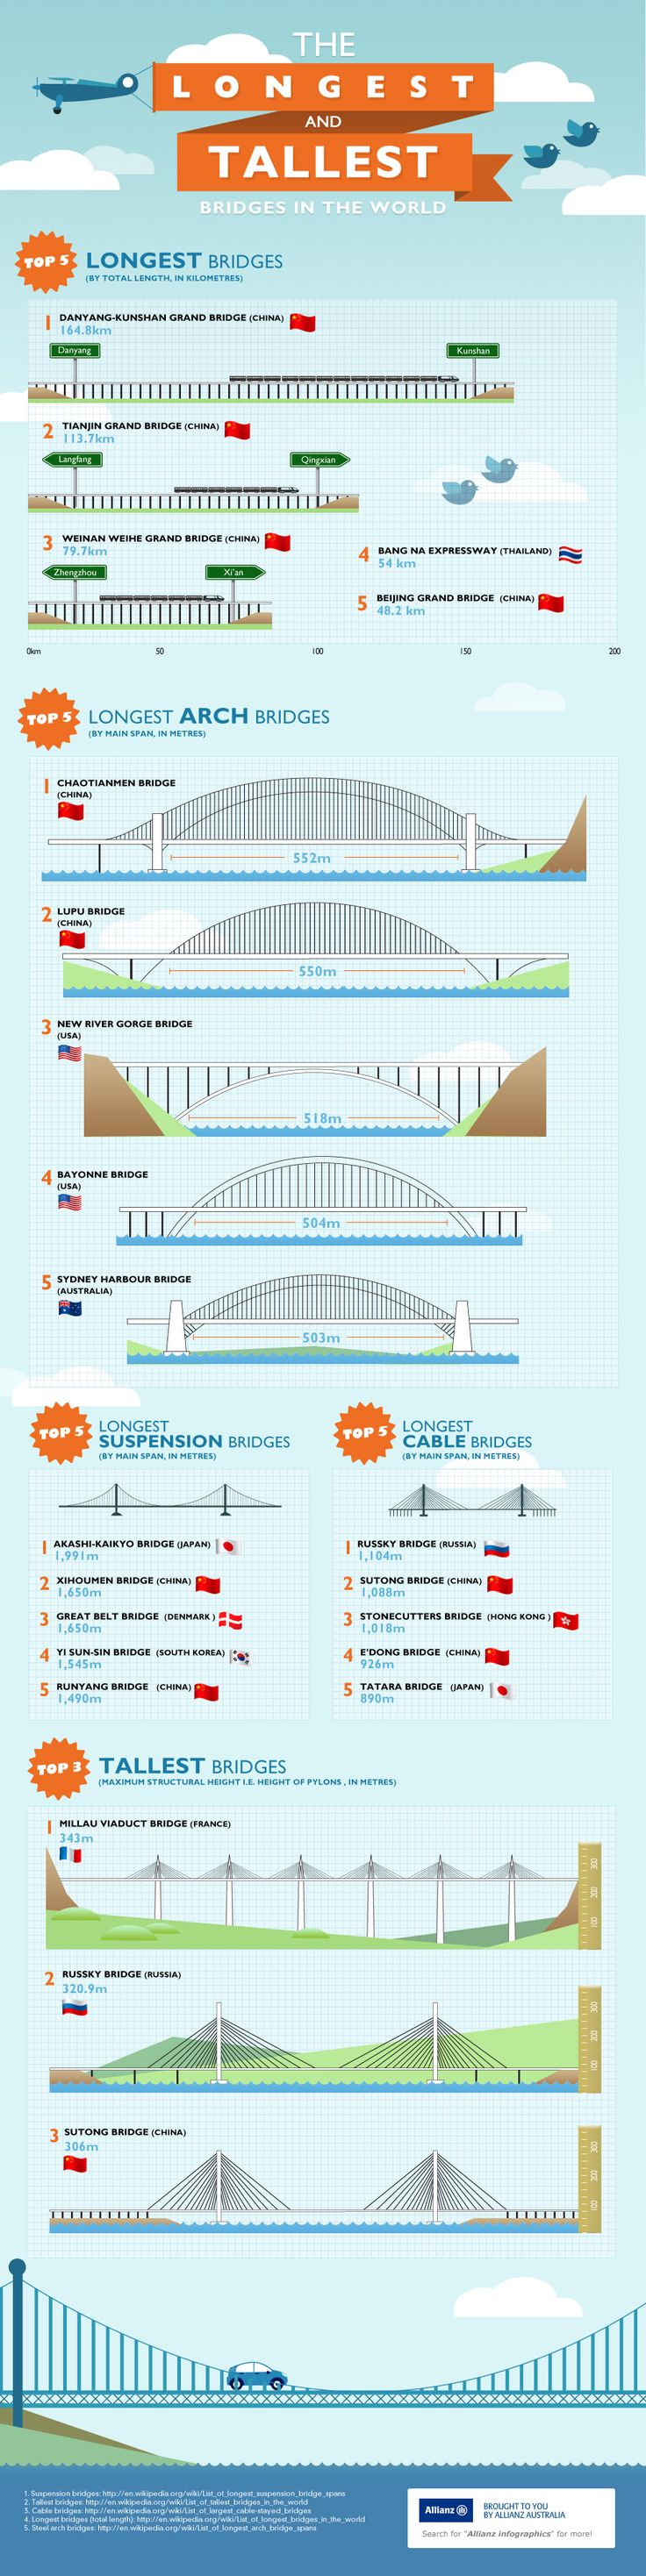 The longest and tallest bridges in the world are incredible feats of engineering and architecture. Check out the awe-inspiring stats on the longest br